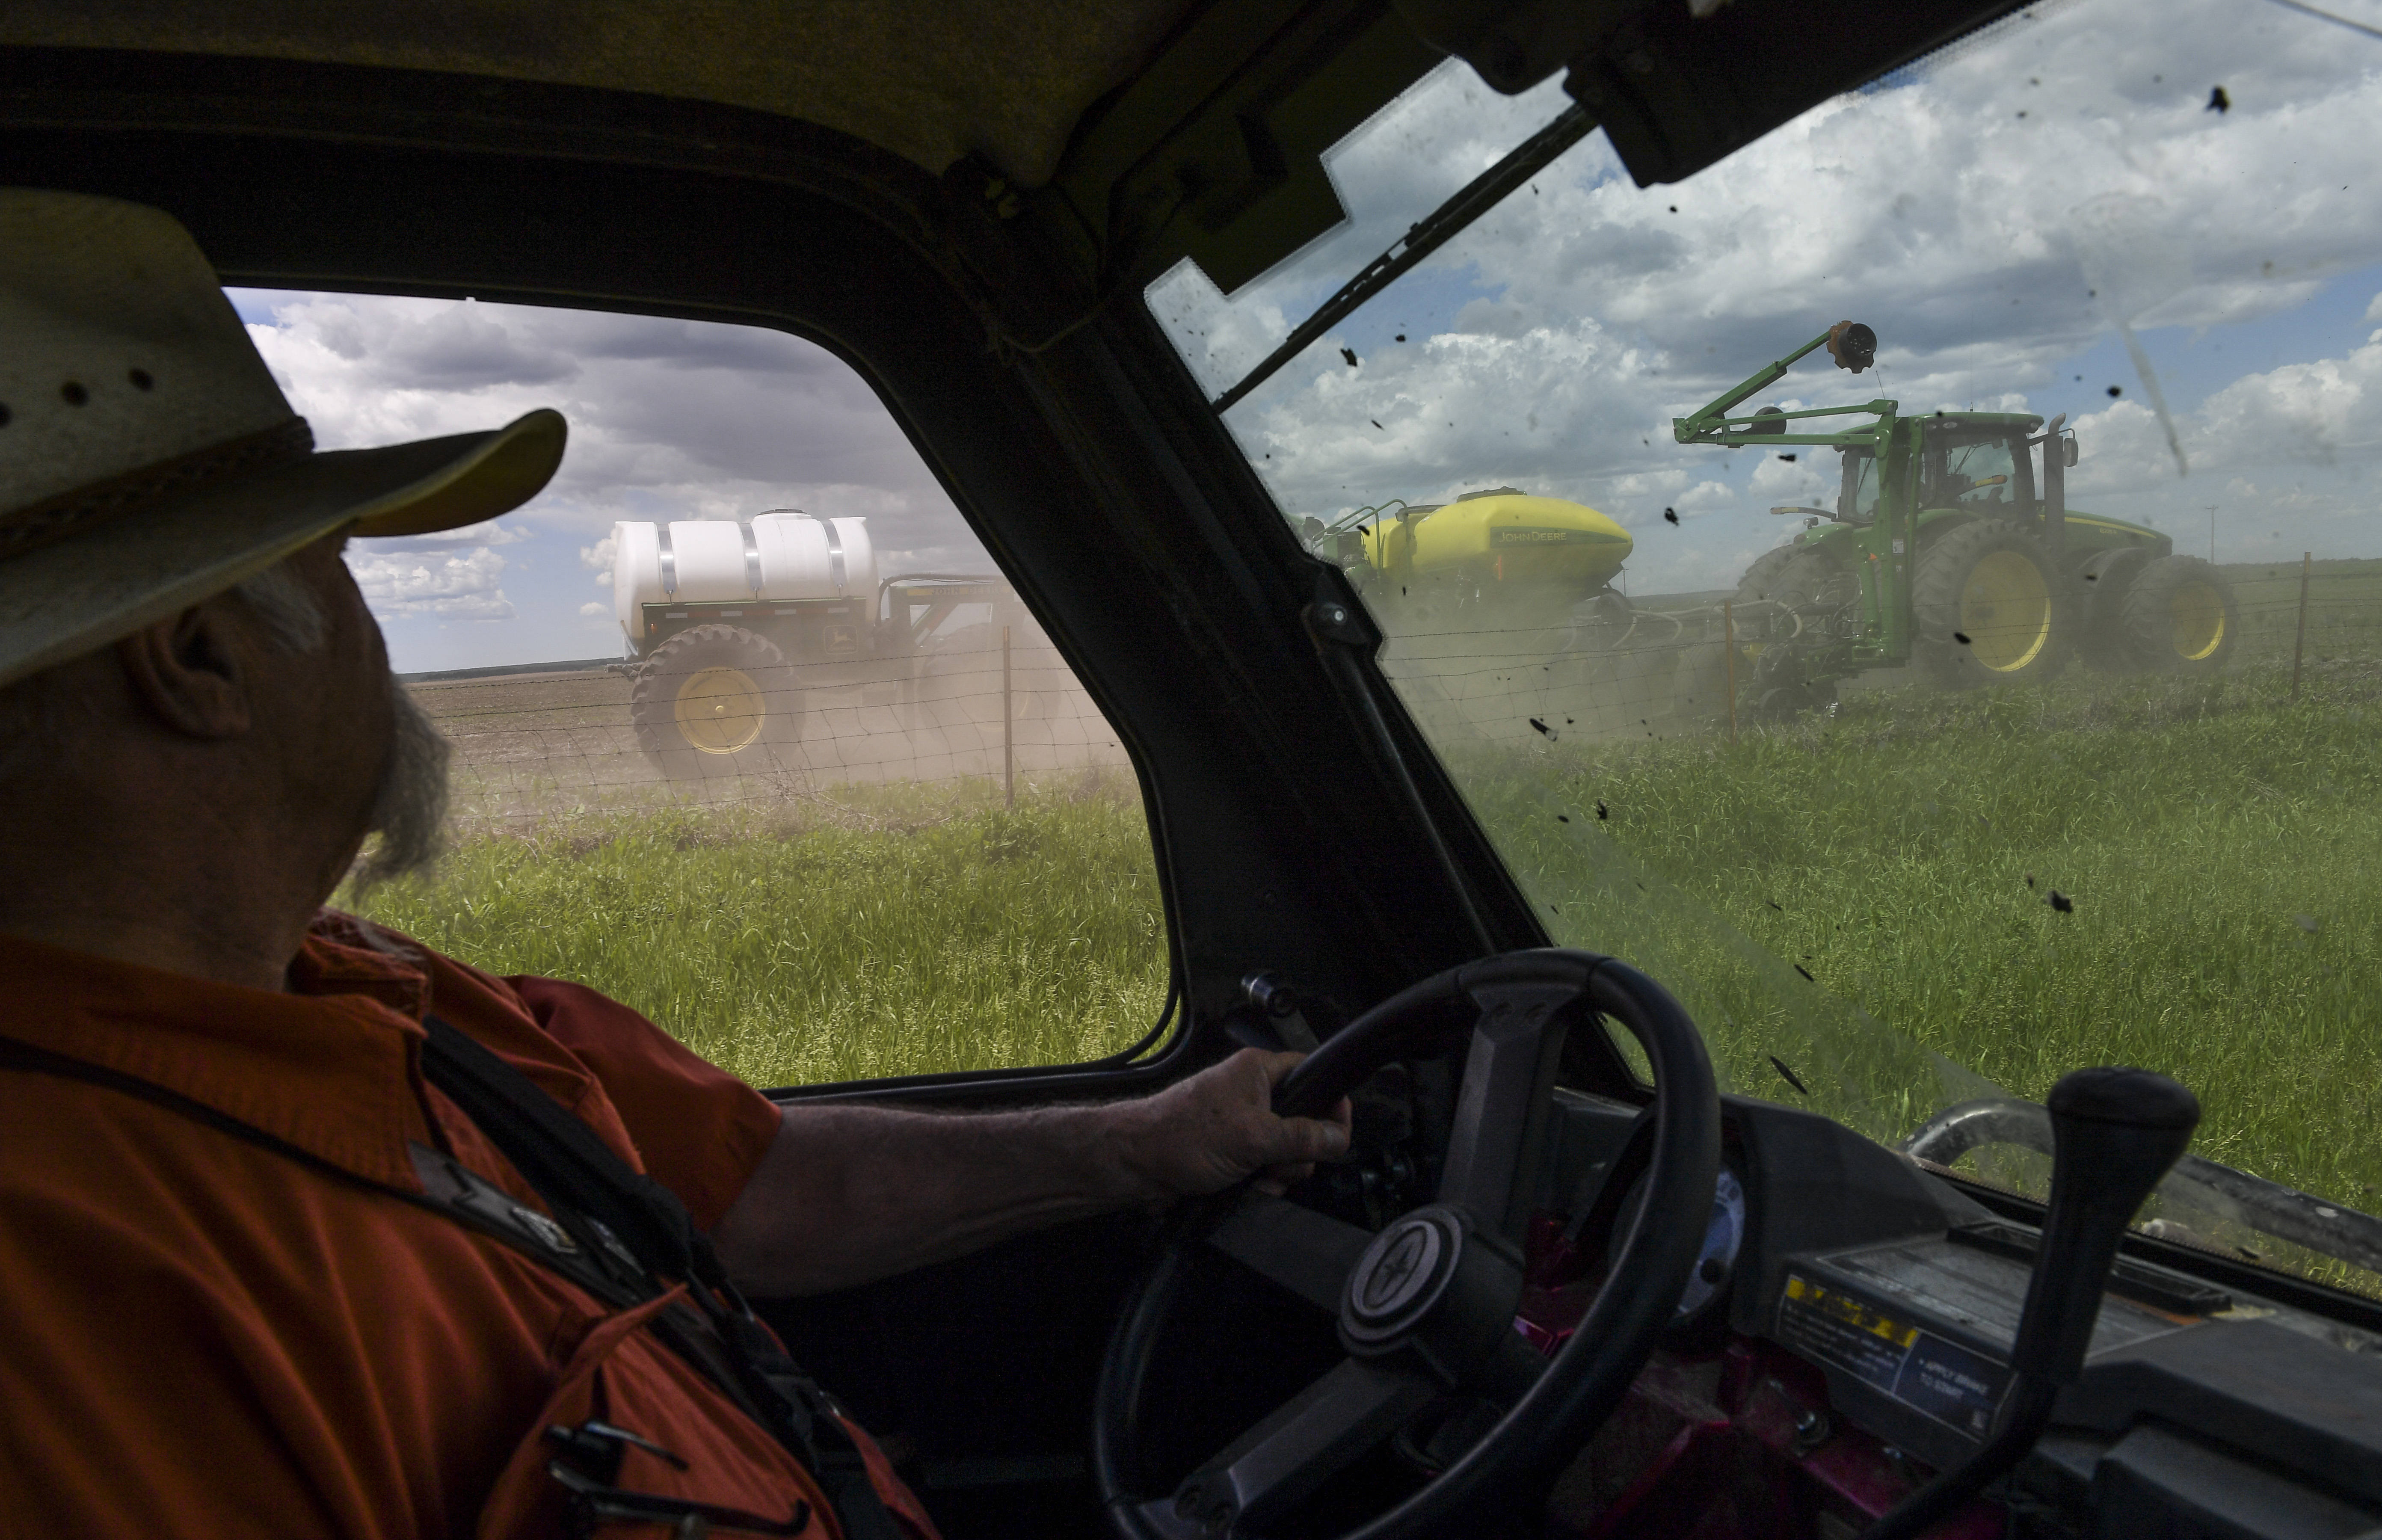 'I don't know how we're going to survive this.' Some once-loyal farmers begin to doubt Trump.